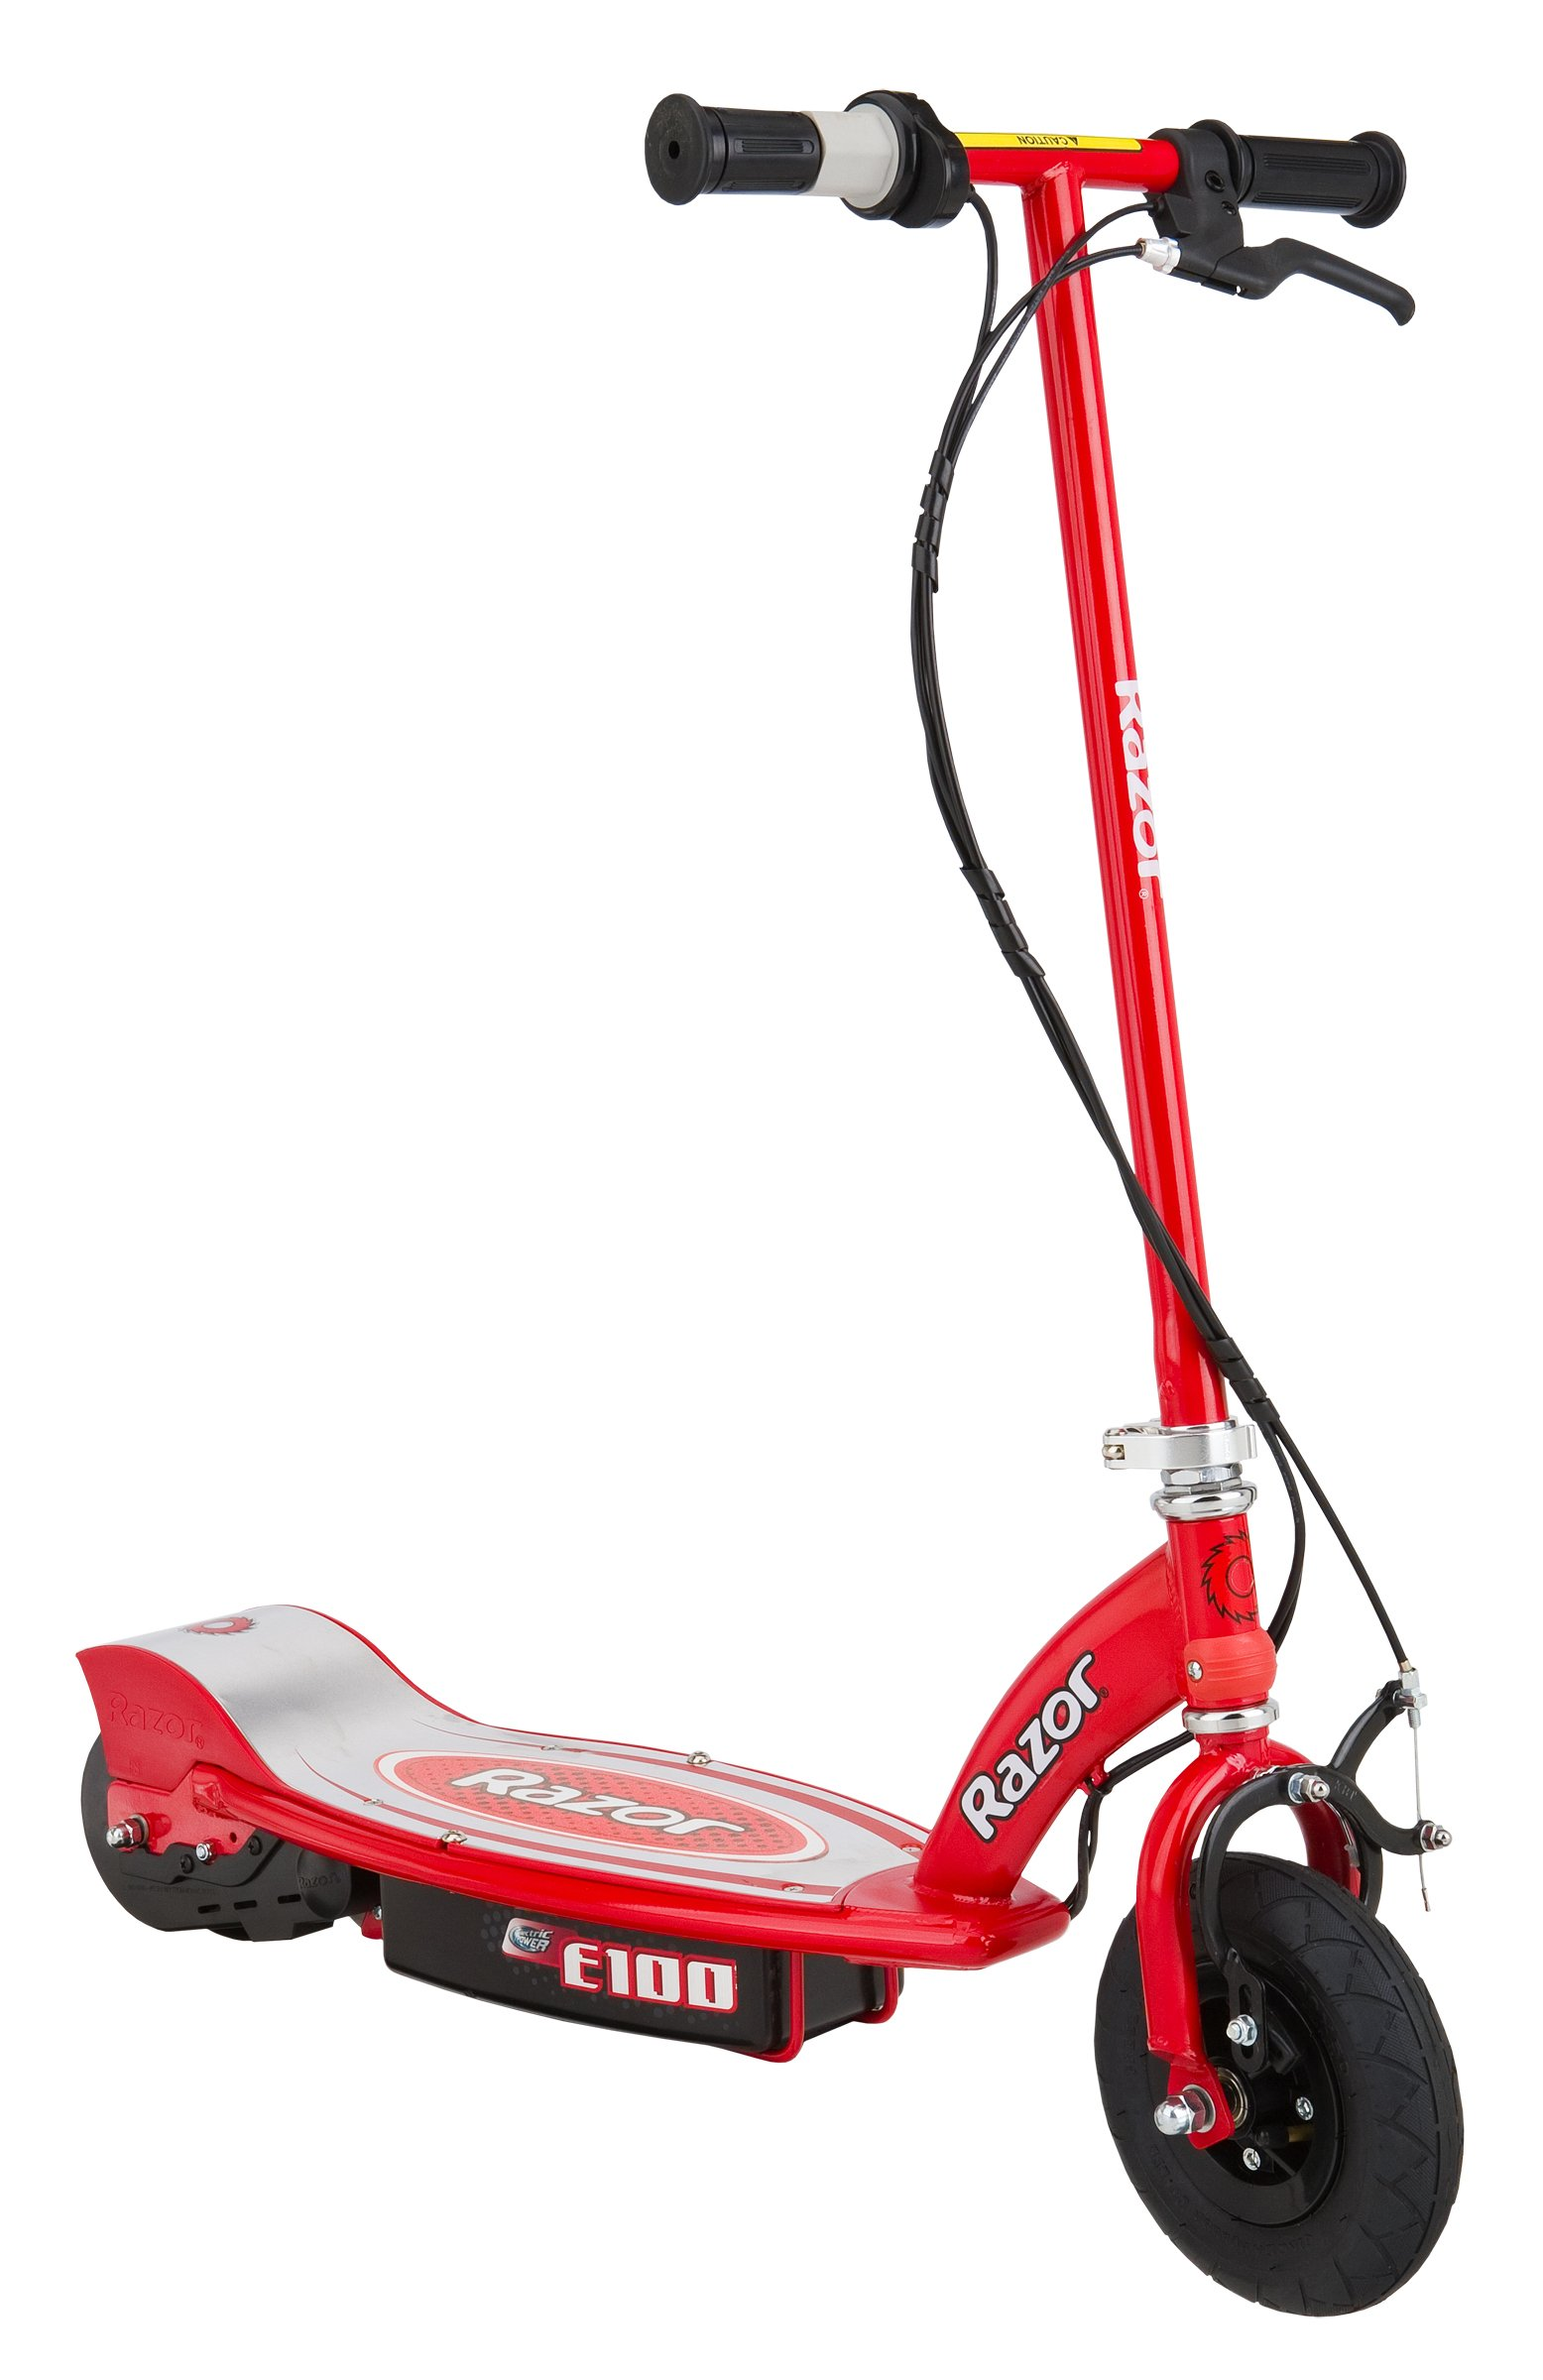 Razor 13111260 E100 Electric Scooter (Red) by Razor